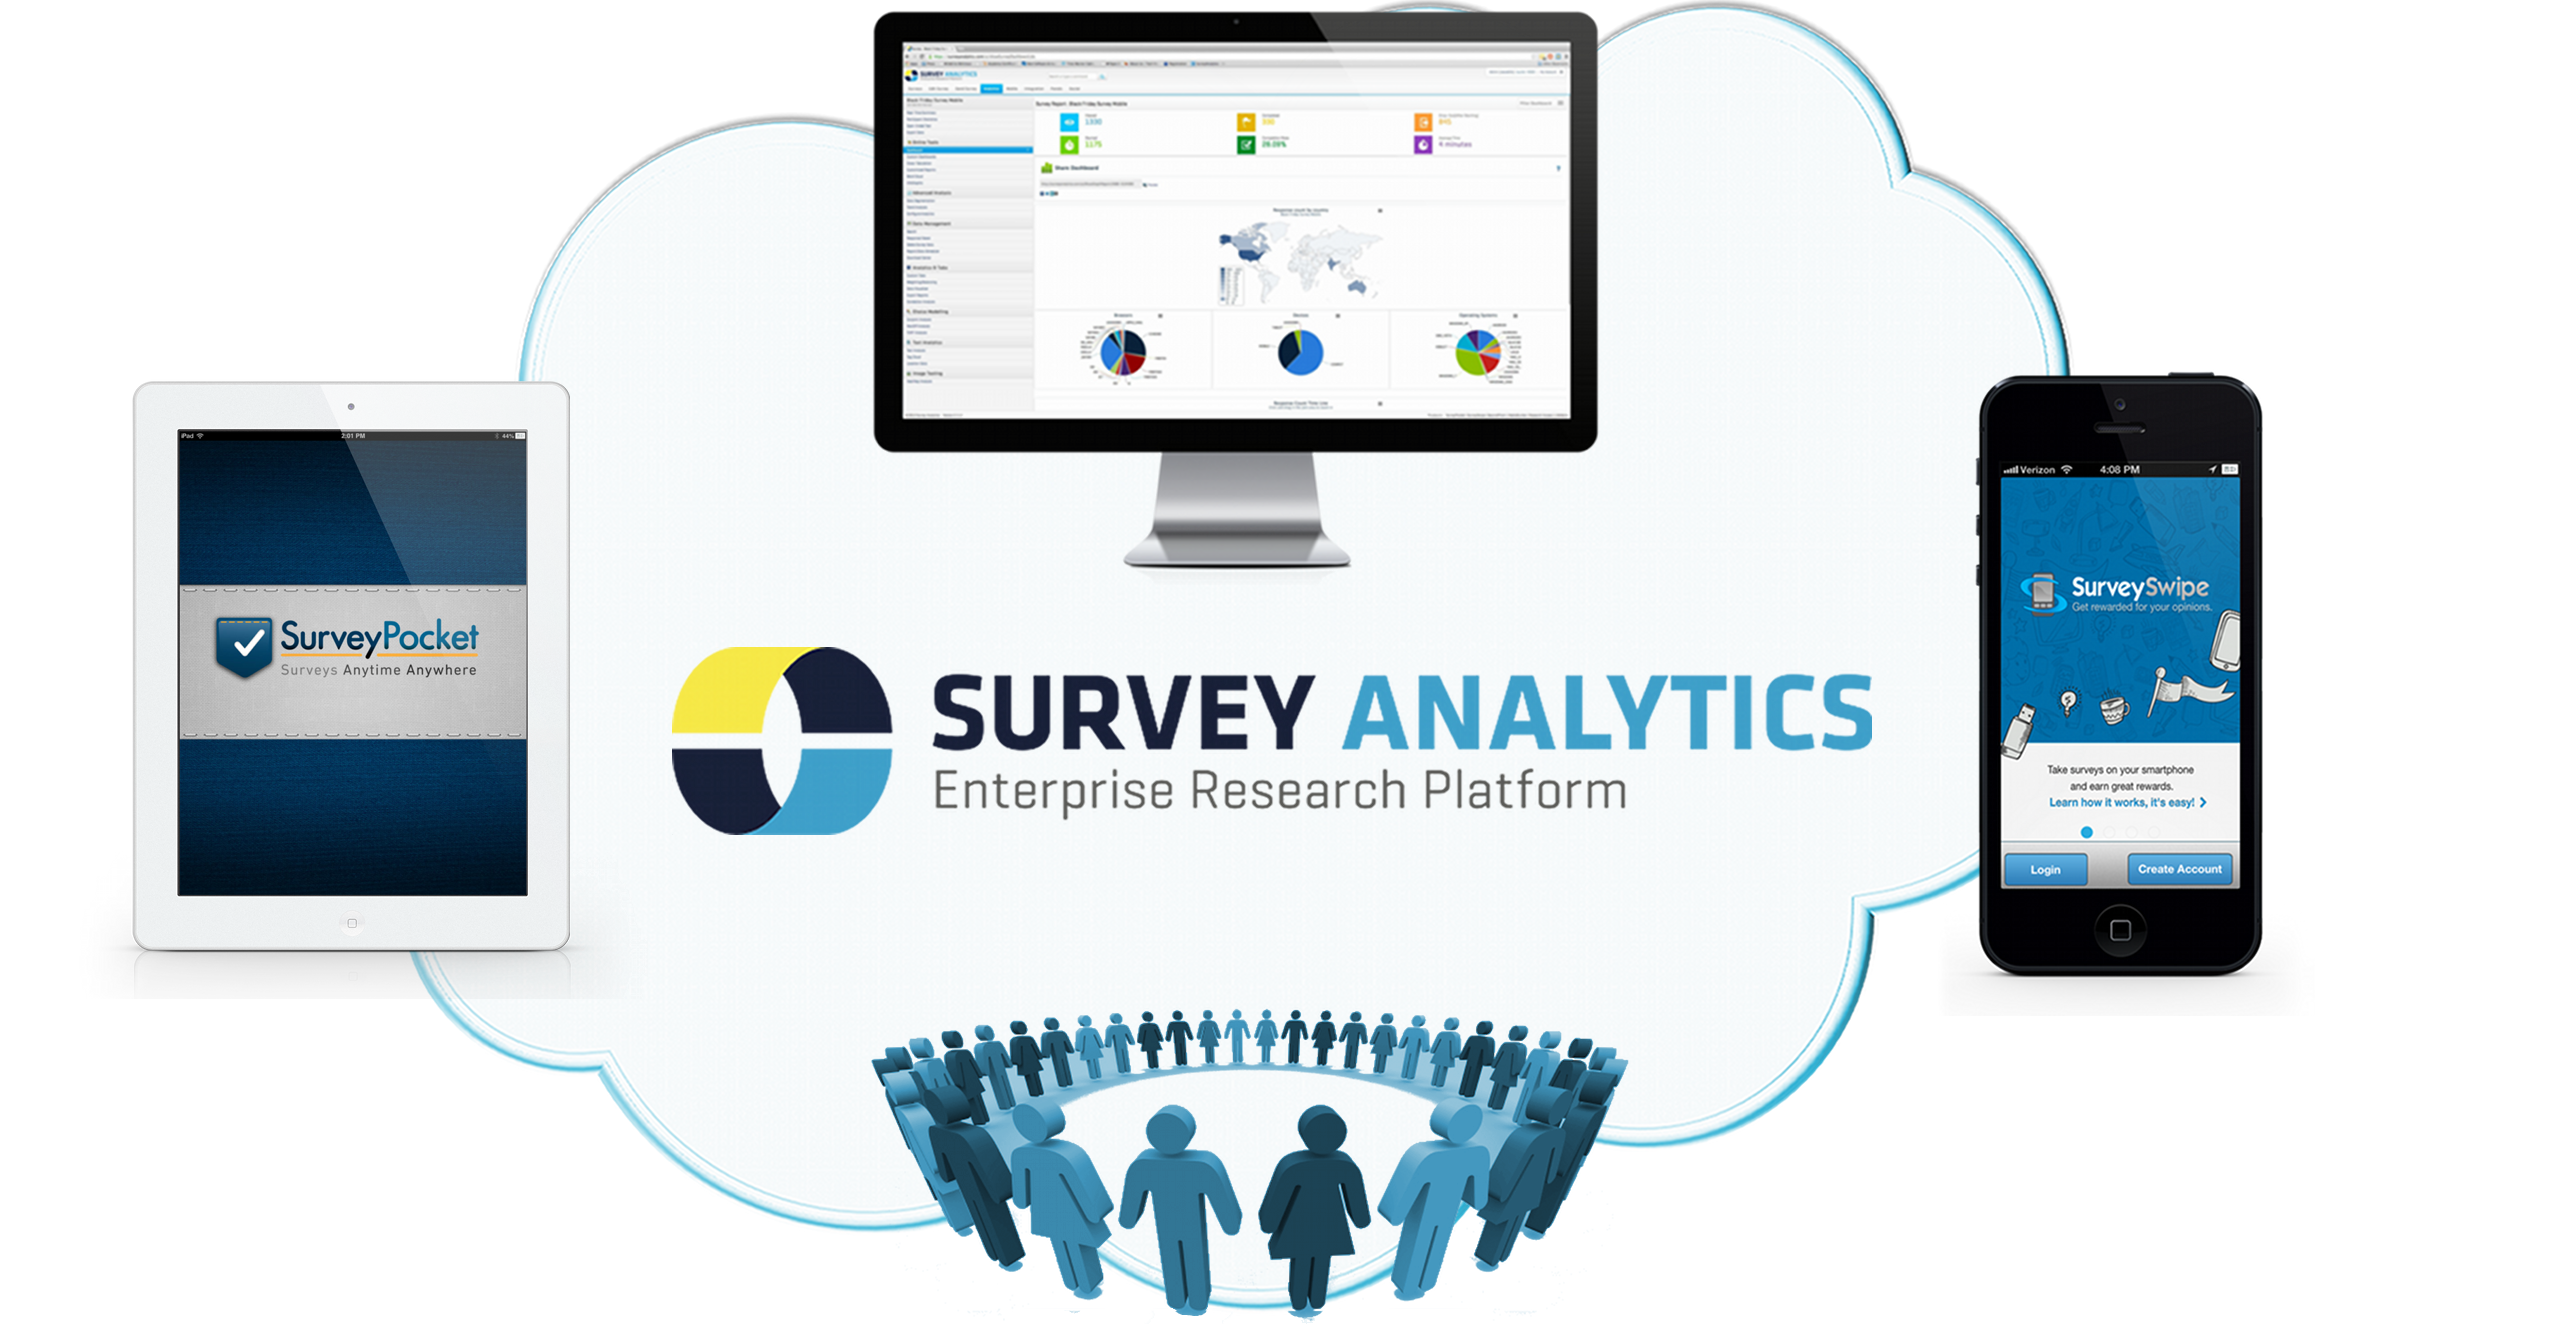 Survey Analytics offers an enterprise grade research platform that provides companies with feedback and listening system capabilities in over 30 industries. Beyond just surveys - our user friendly and powerful cloud enabled tools allow organizations to collect feedback and analyze various forms of data through online, mobile and custom panel or community channels.